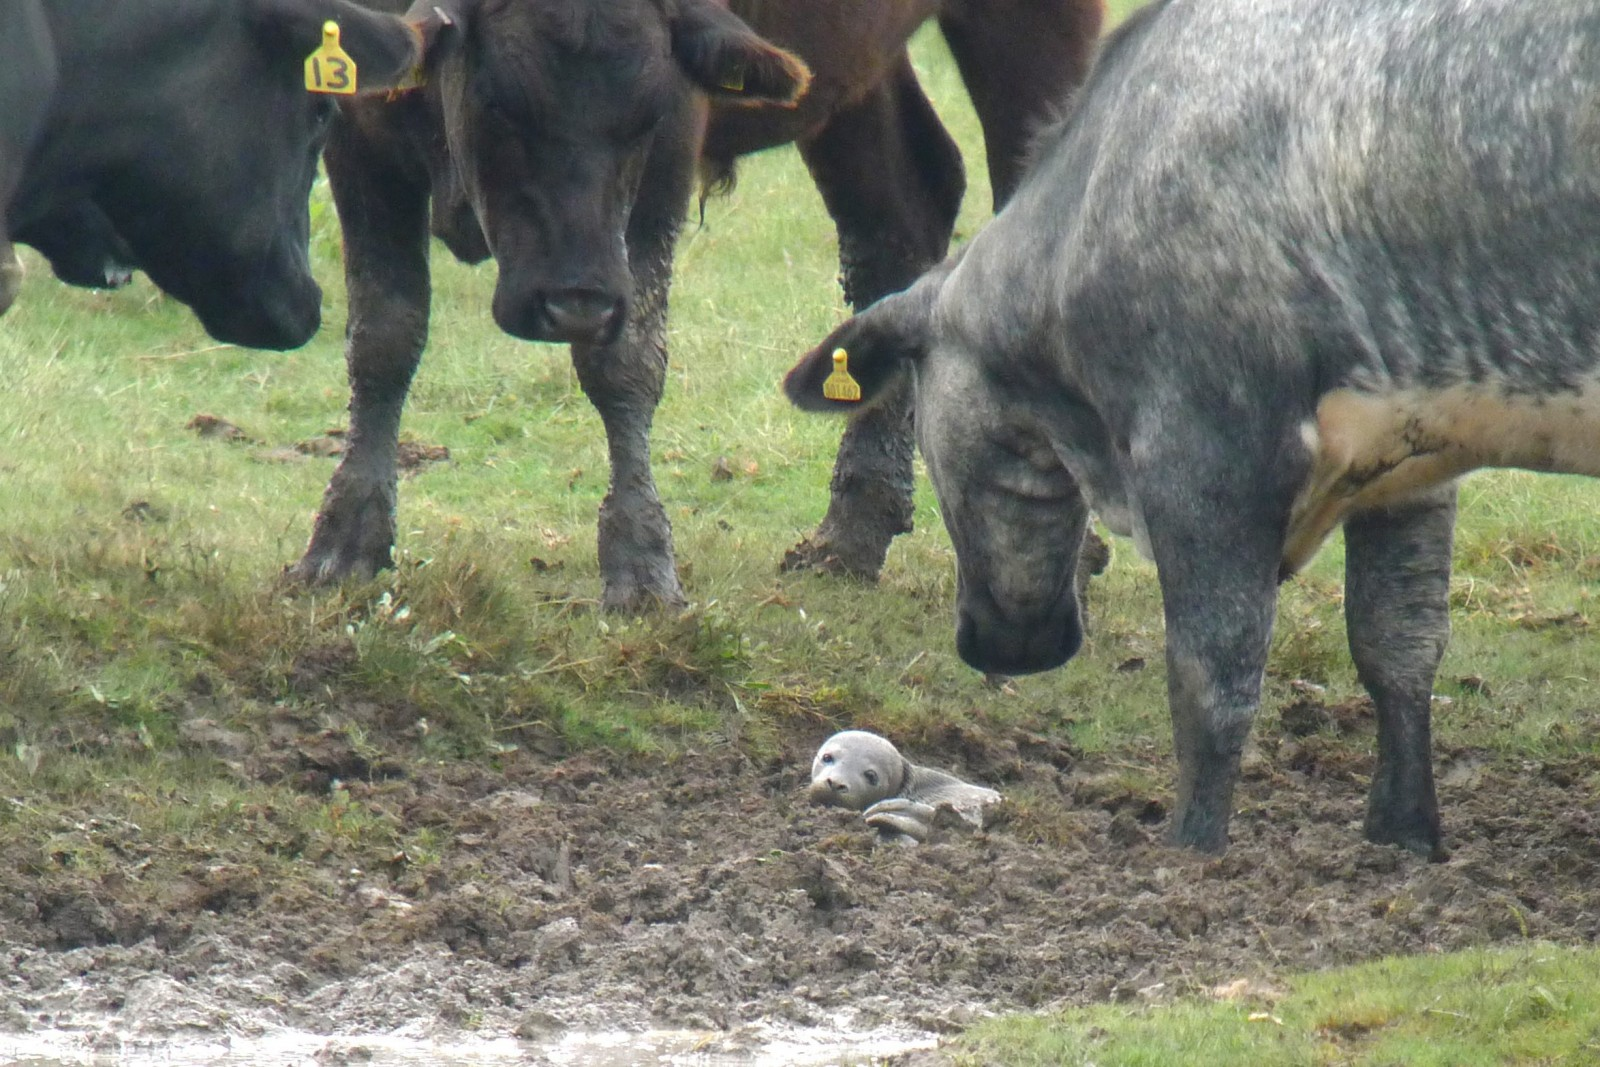 Discover the fate of the baby seal found terrified in a field of cows…